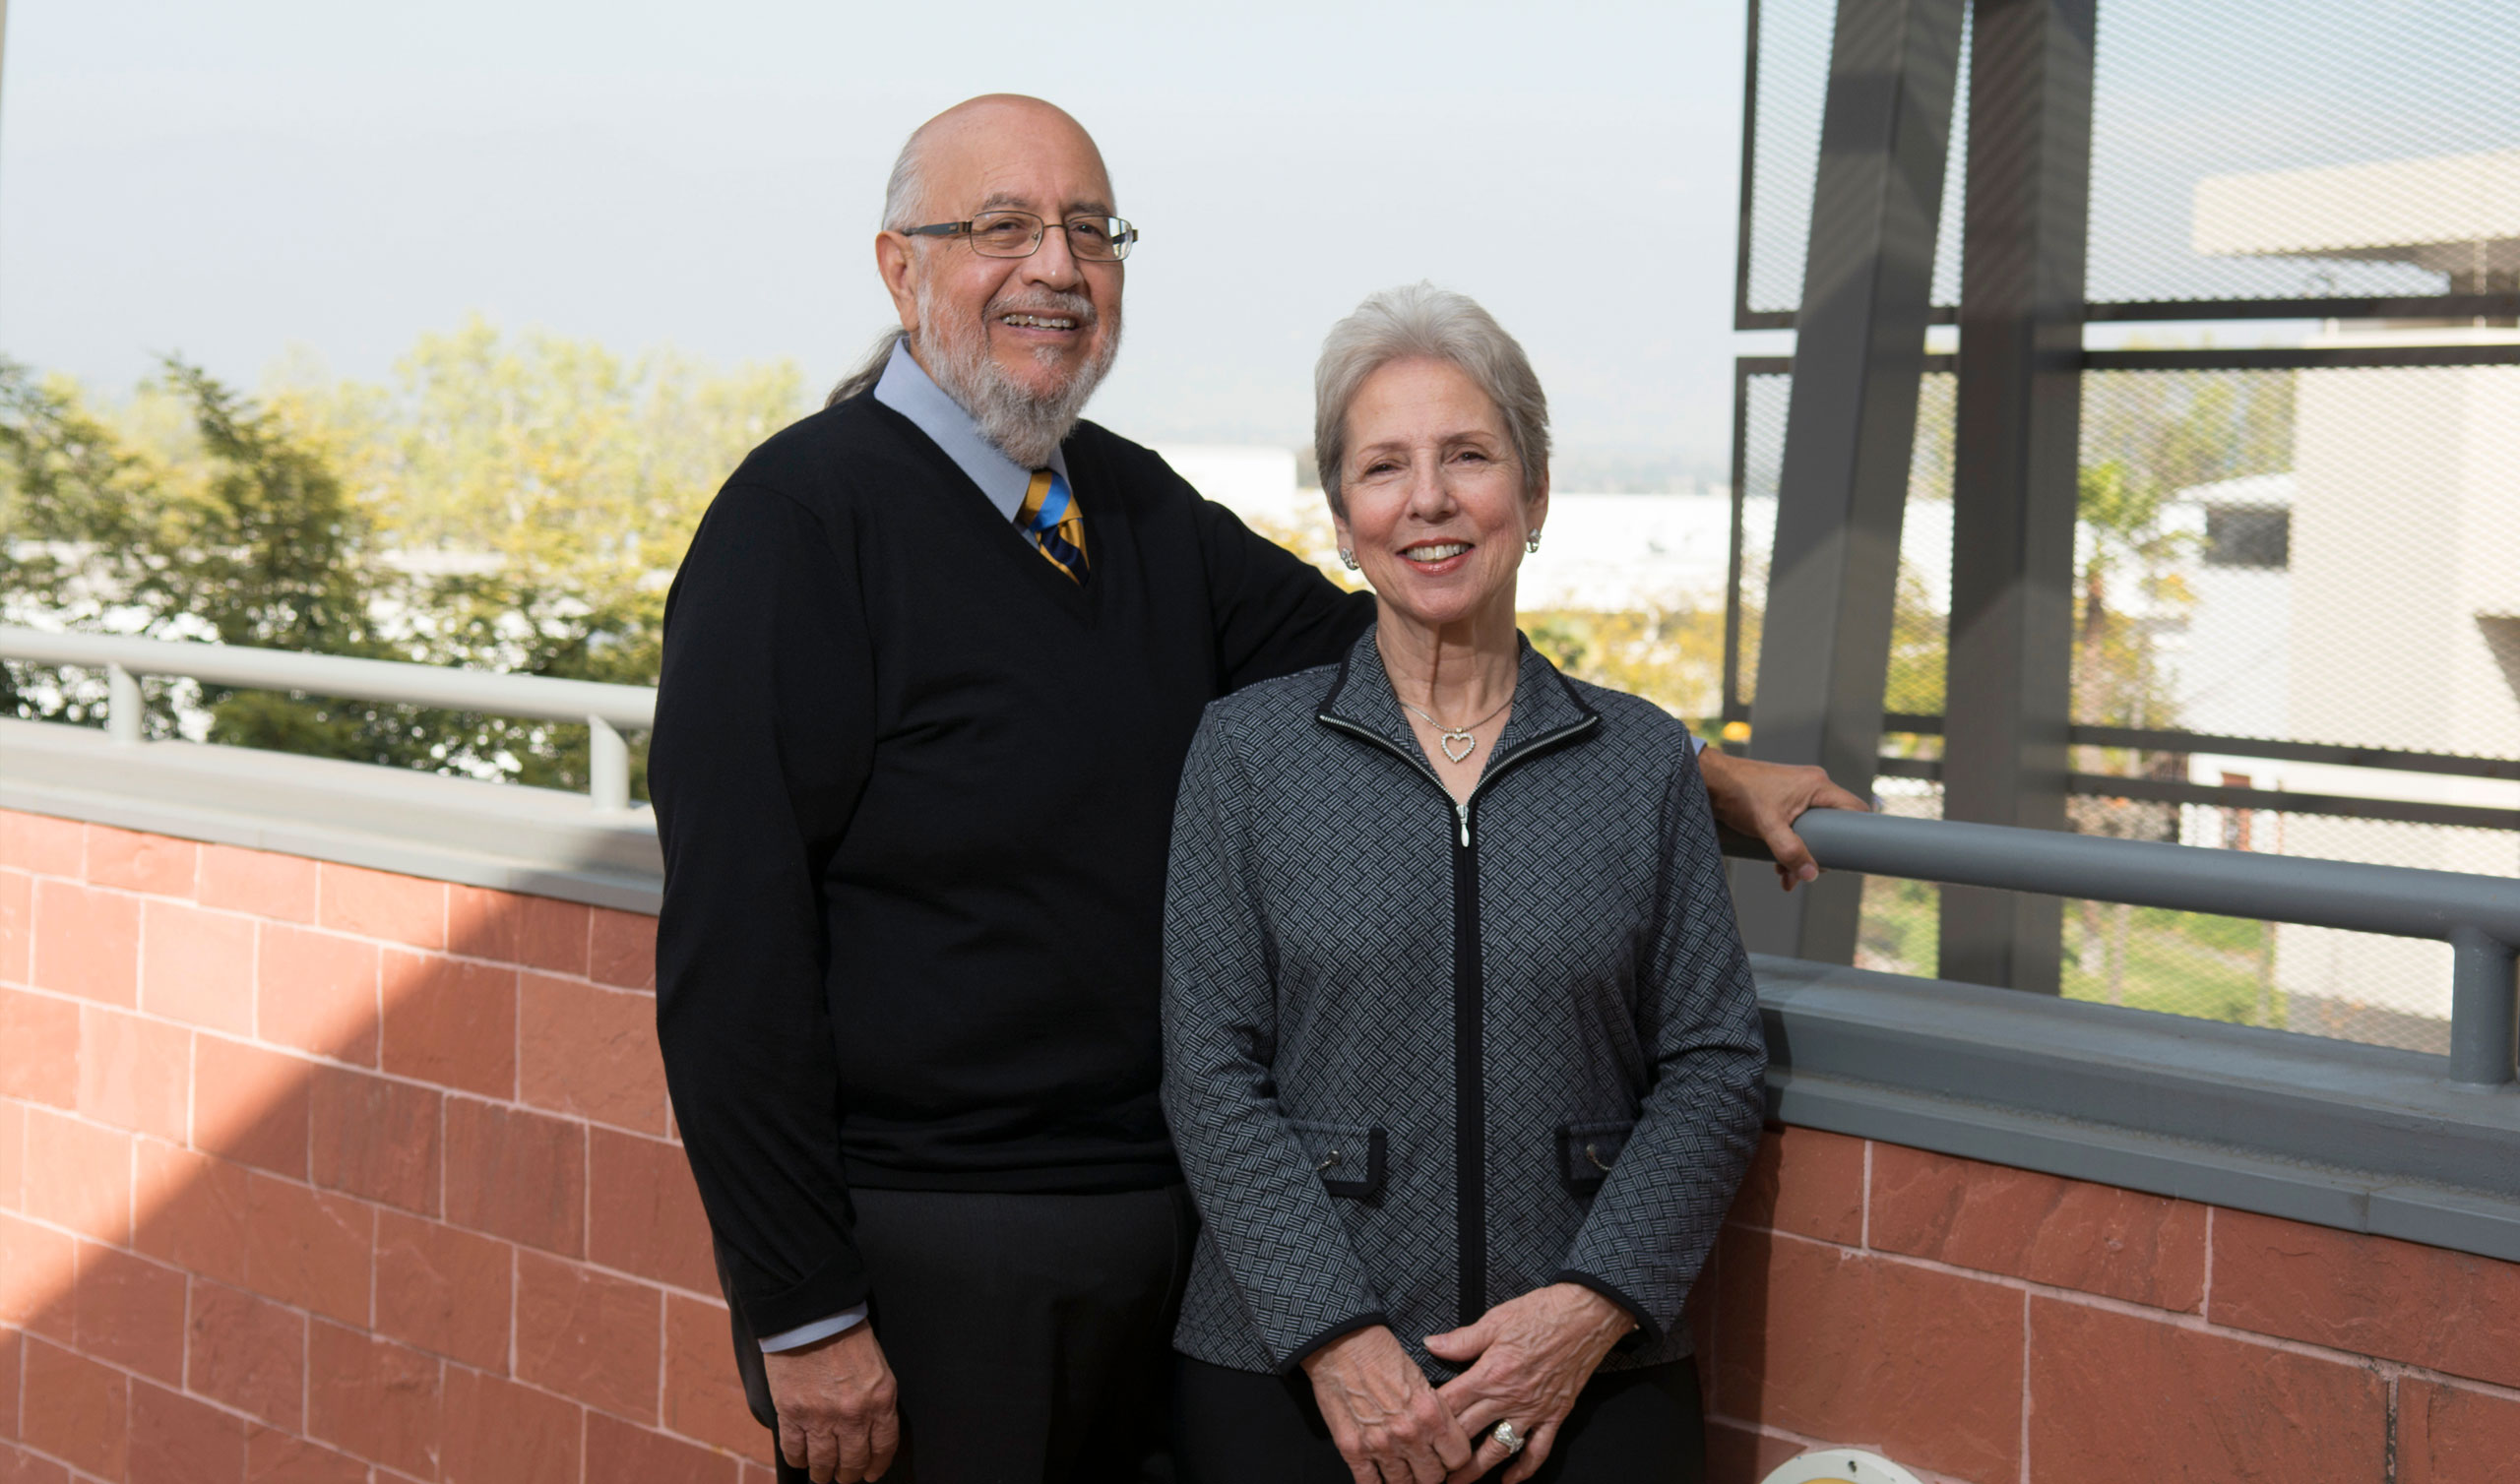 Cal State LA Alumni and Donors, The Sandoval Family